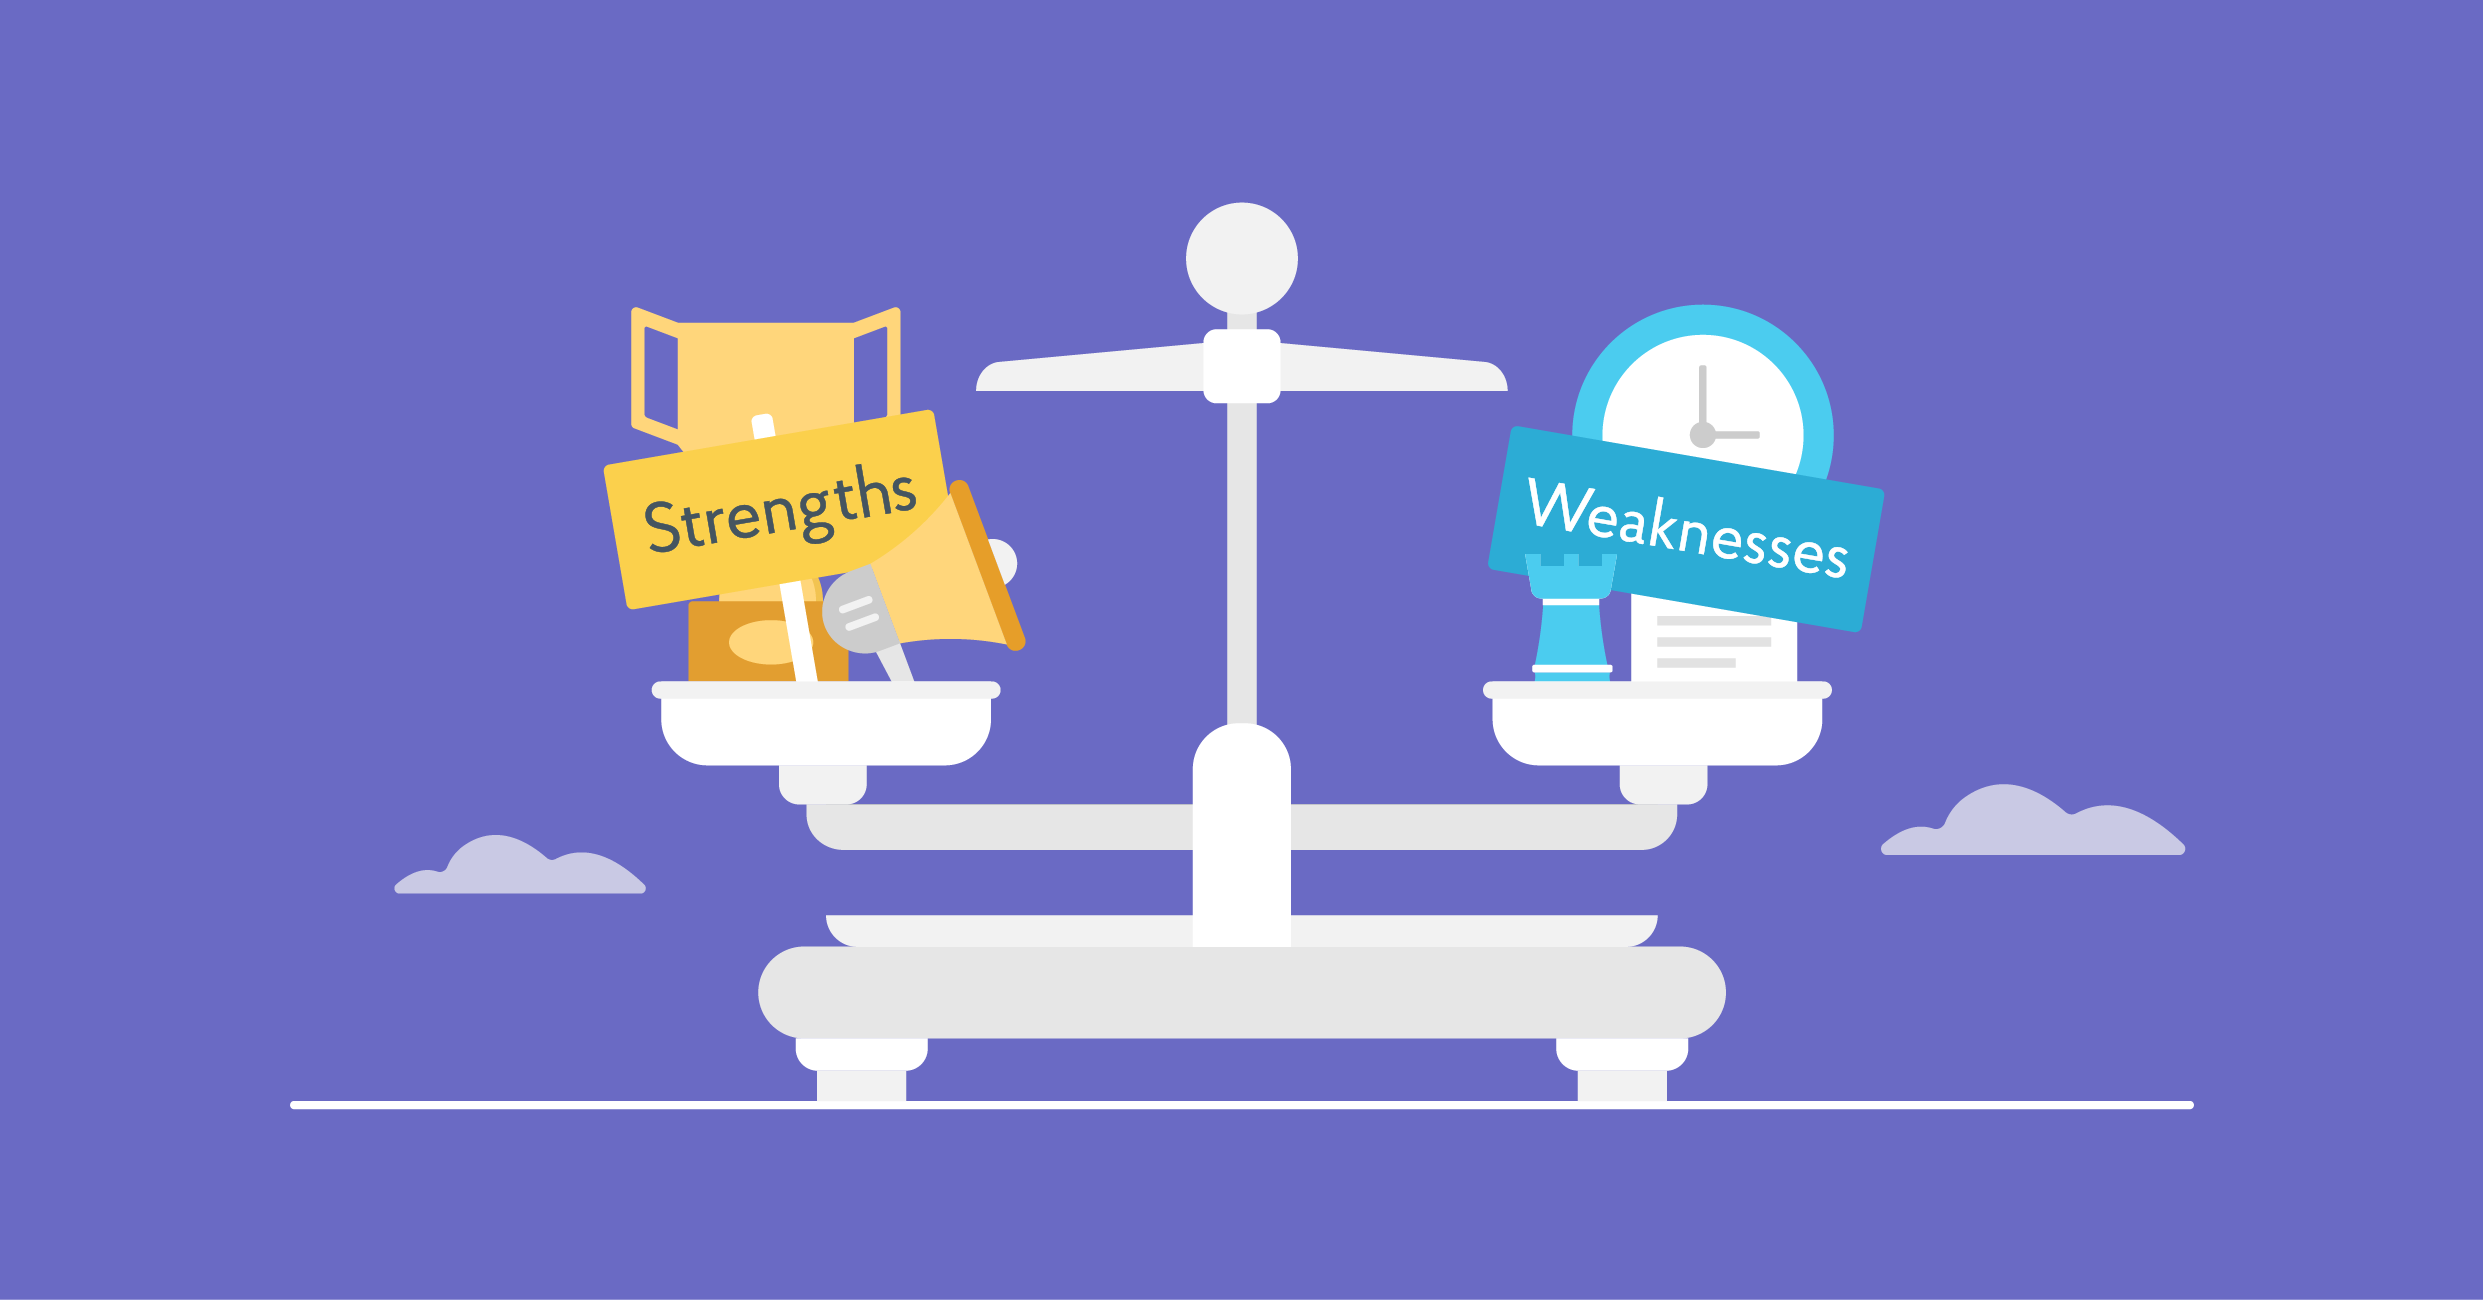 Assess your Strengths and Weaknesses